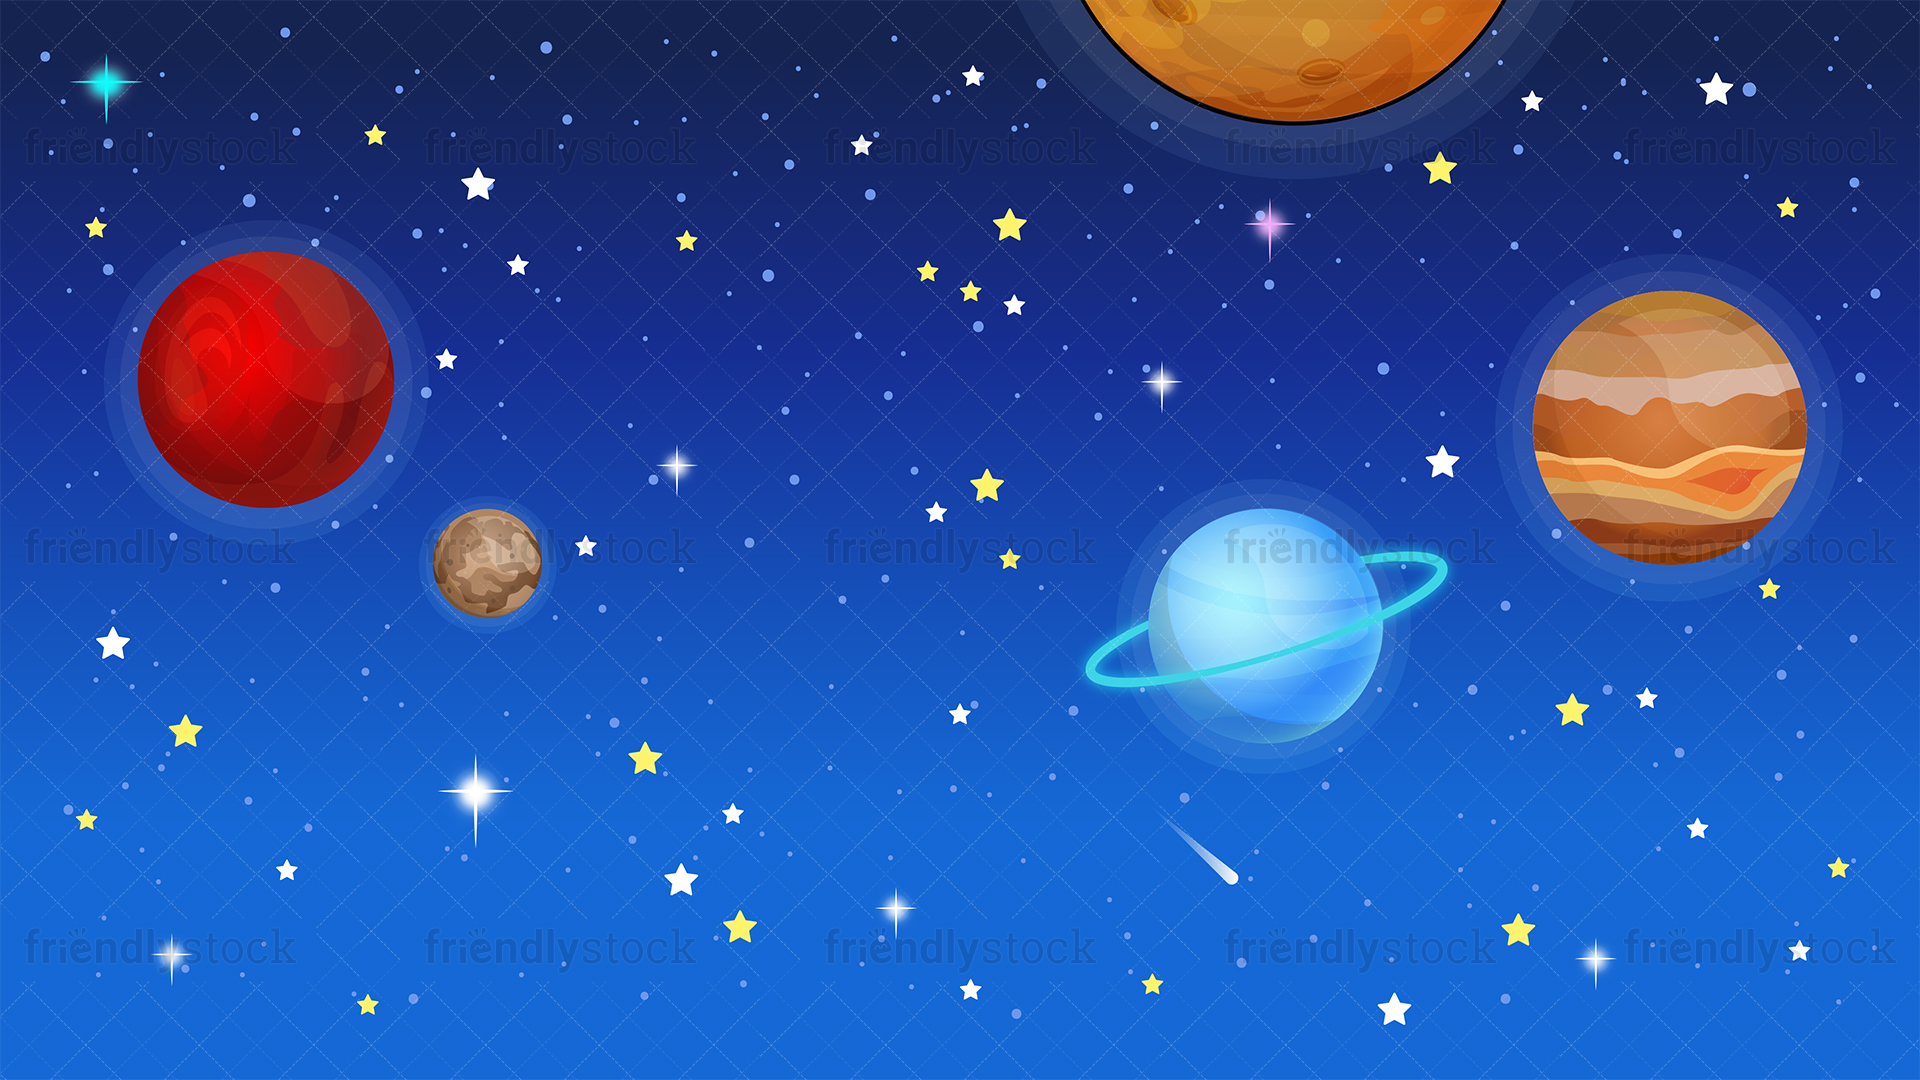 Outer Space Background Cartoon Clipart Vector   FriendlyStock 1920x1080